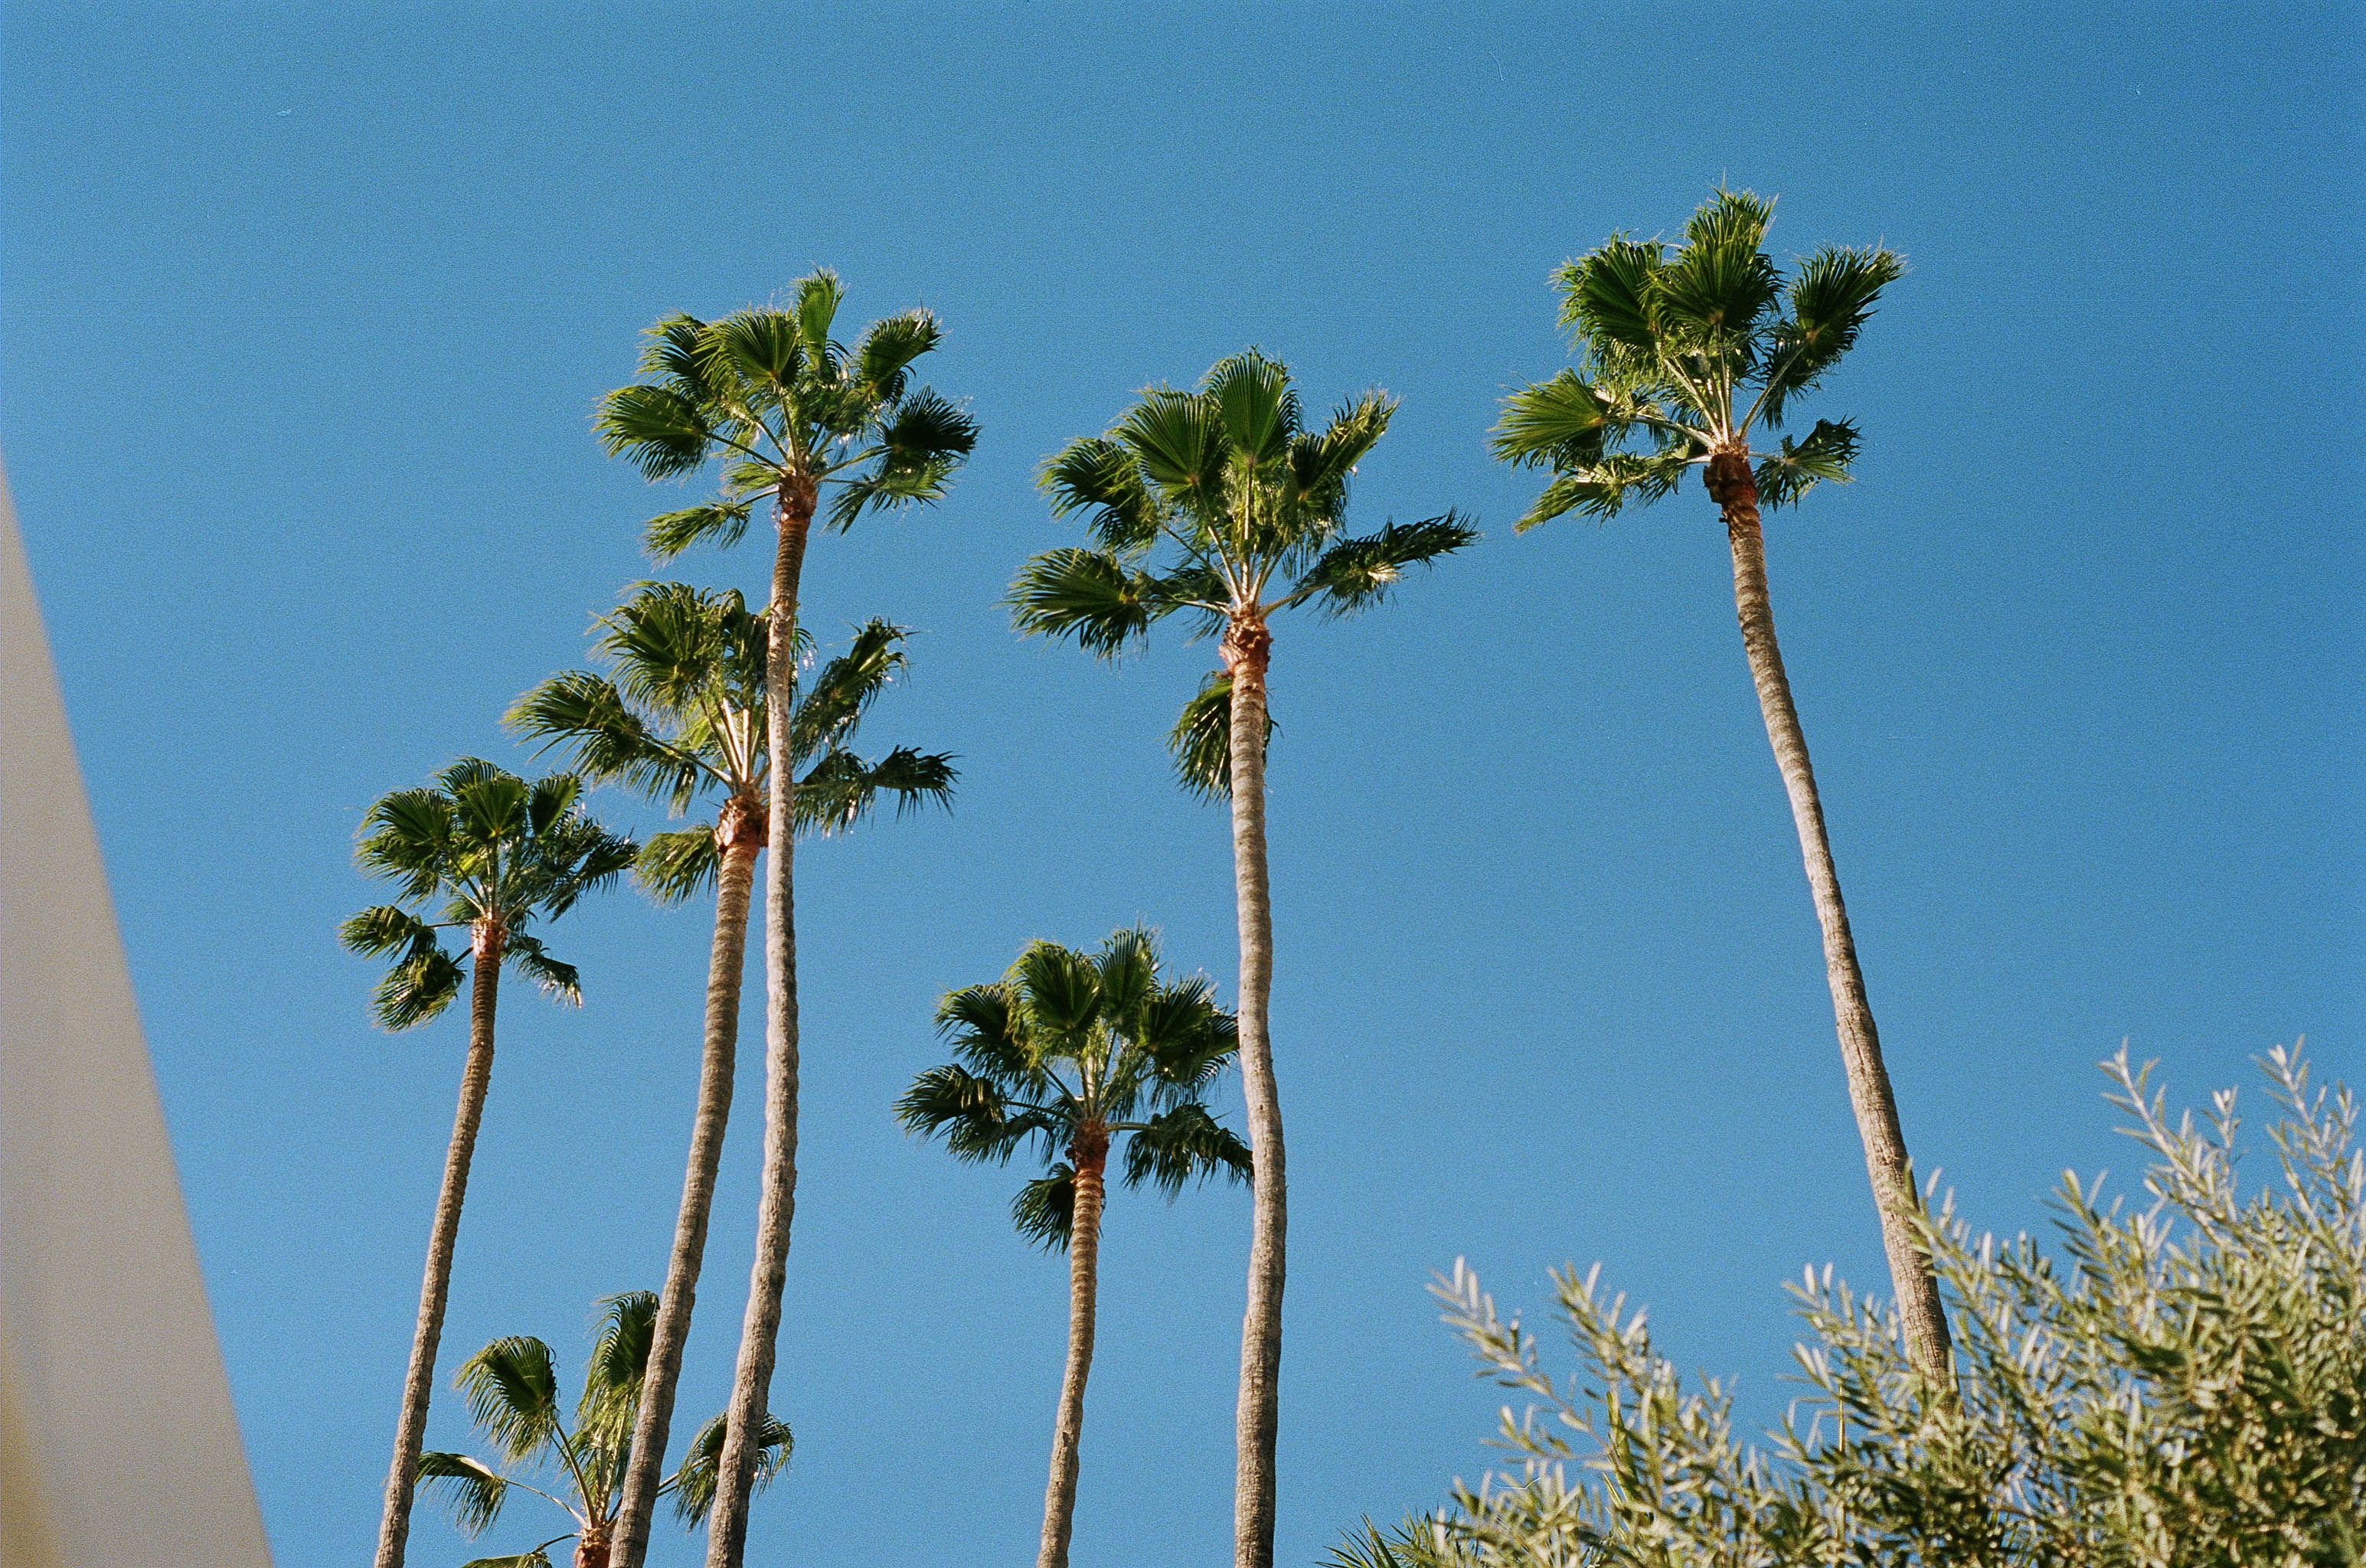 Those palm trees